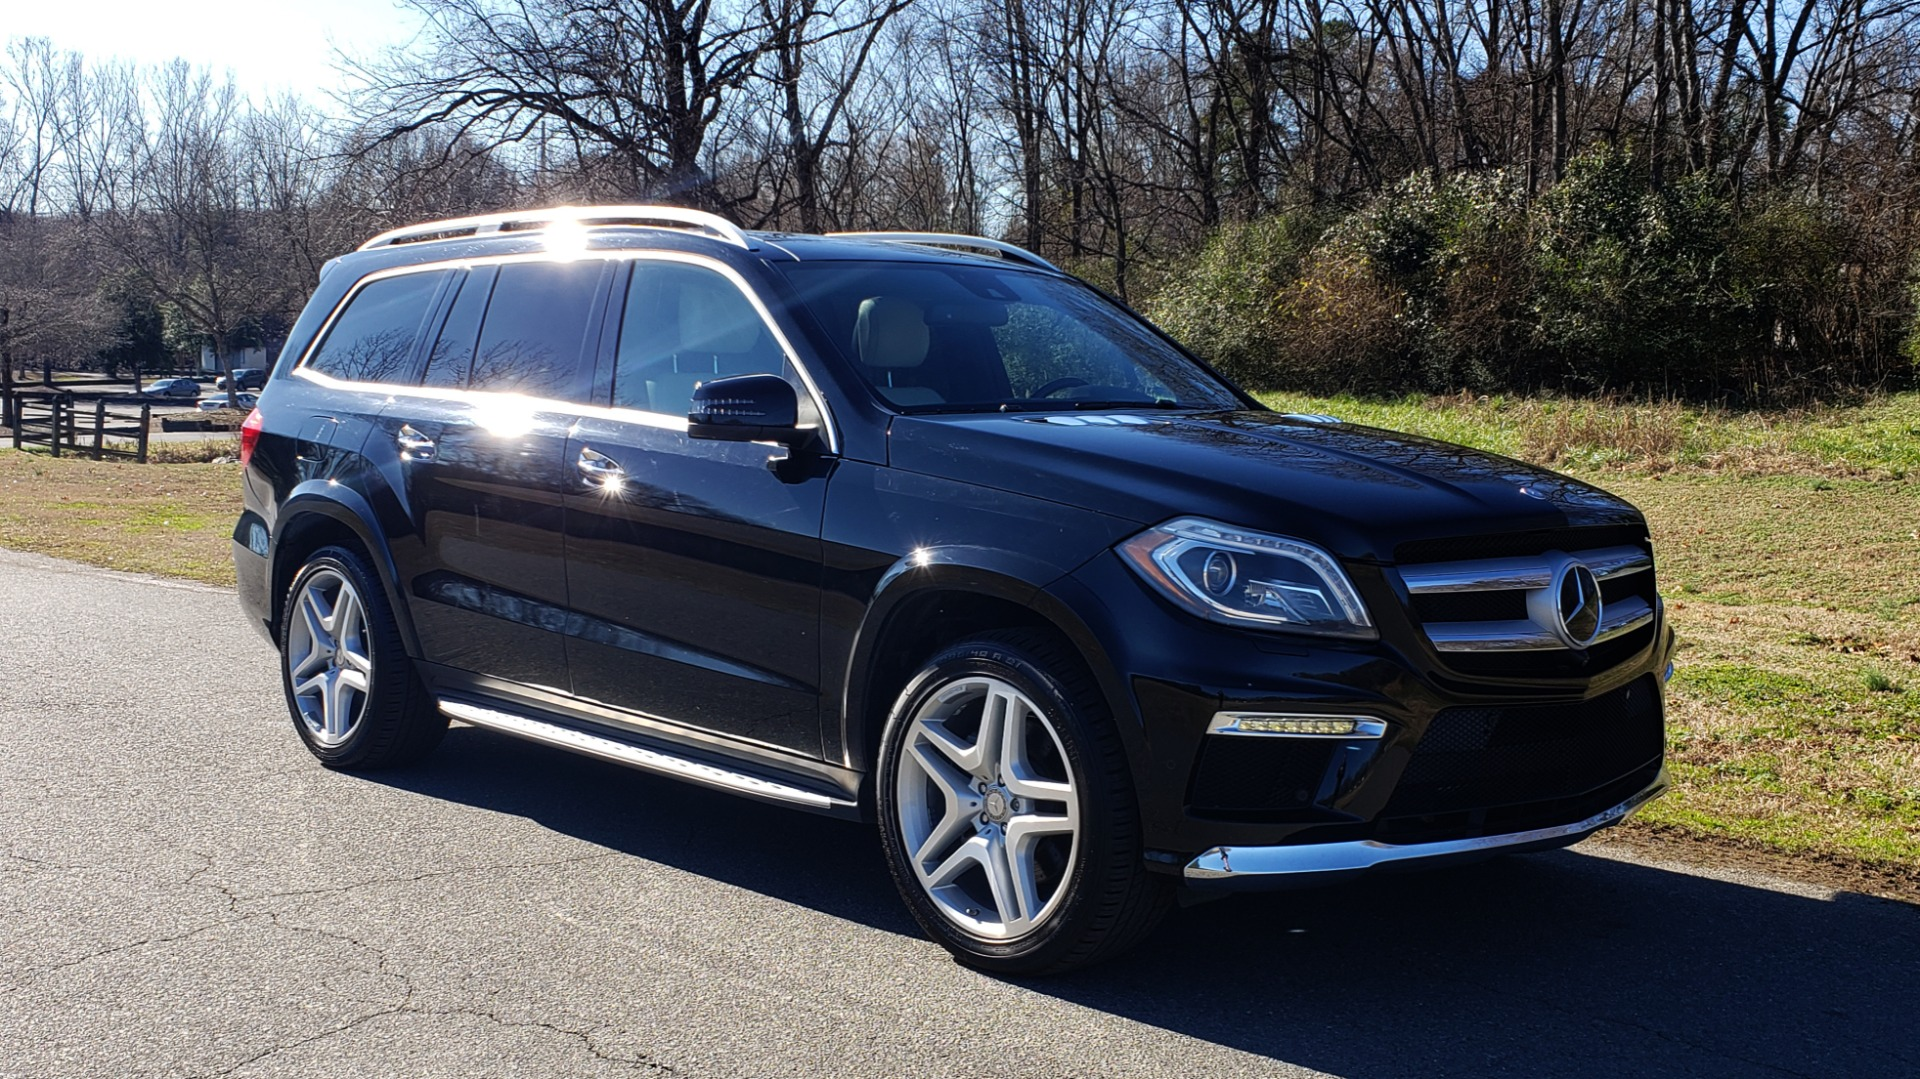 Used 2015 Mercedes-Benz GL-Class GL 550 4MATIC / DRVR ASST / PANO-ROOF / DESIGNO / REARVIEW for sale Sold at Formula Imports in Charlotte NC 28227 4